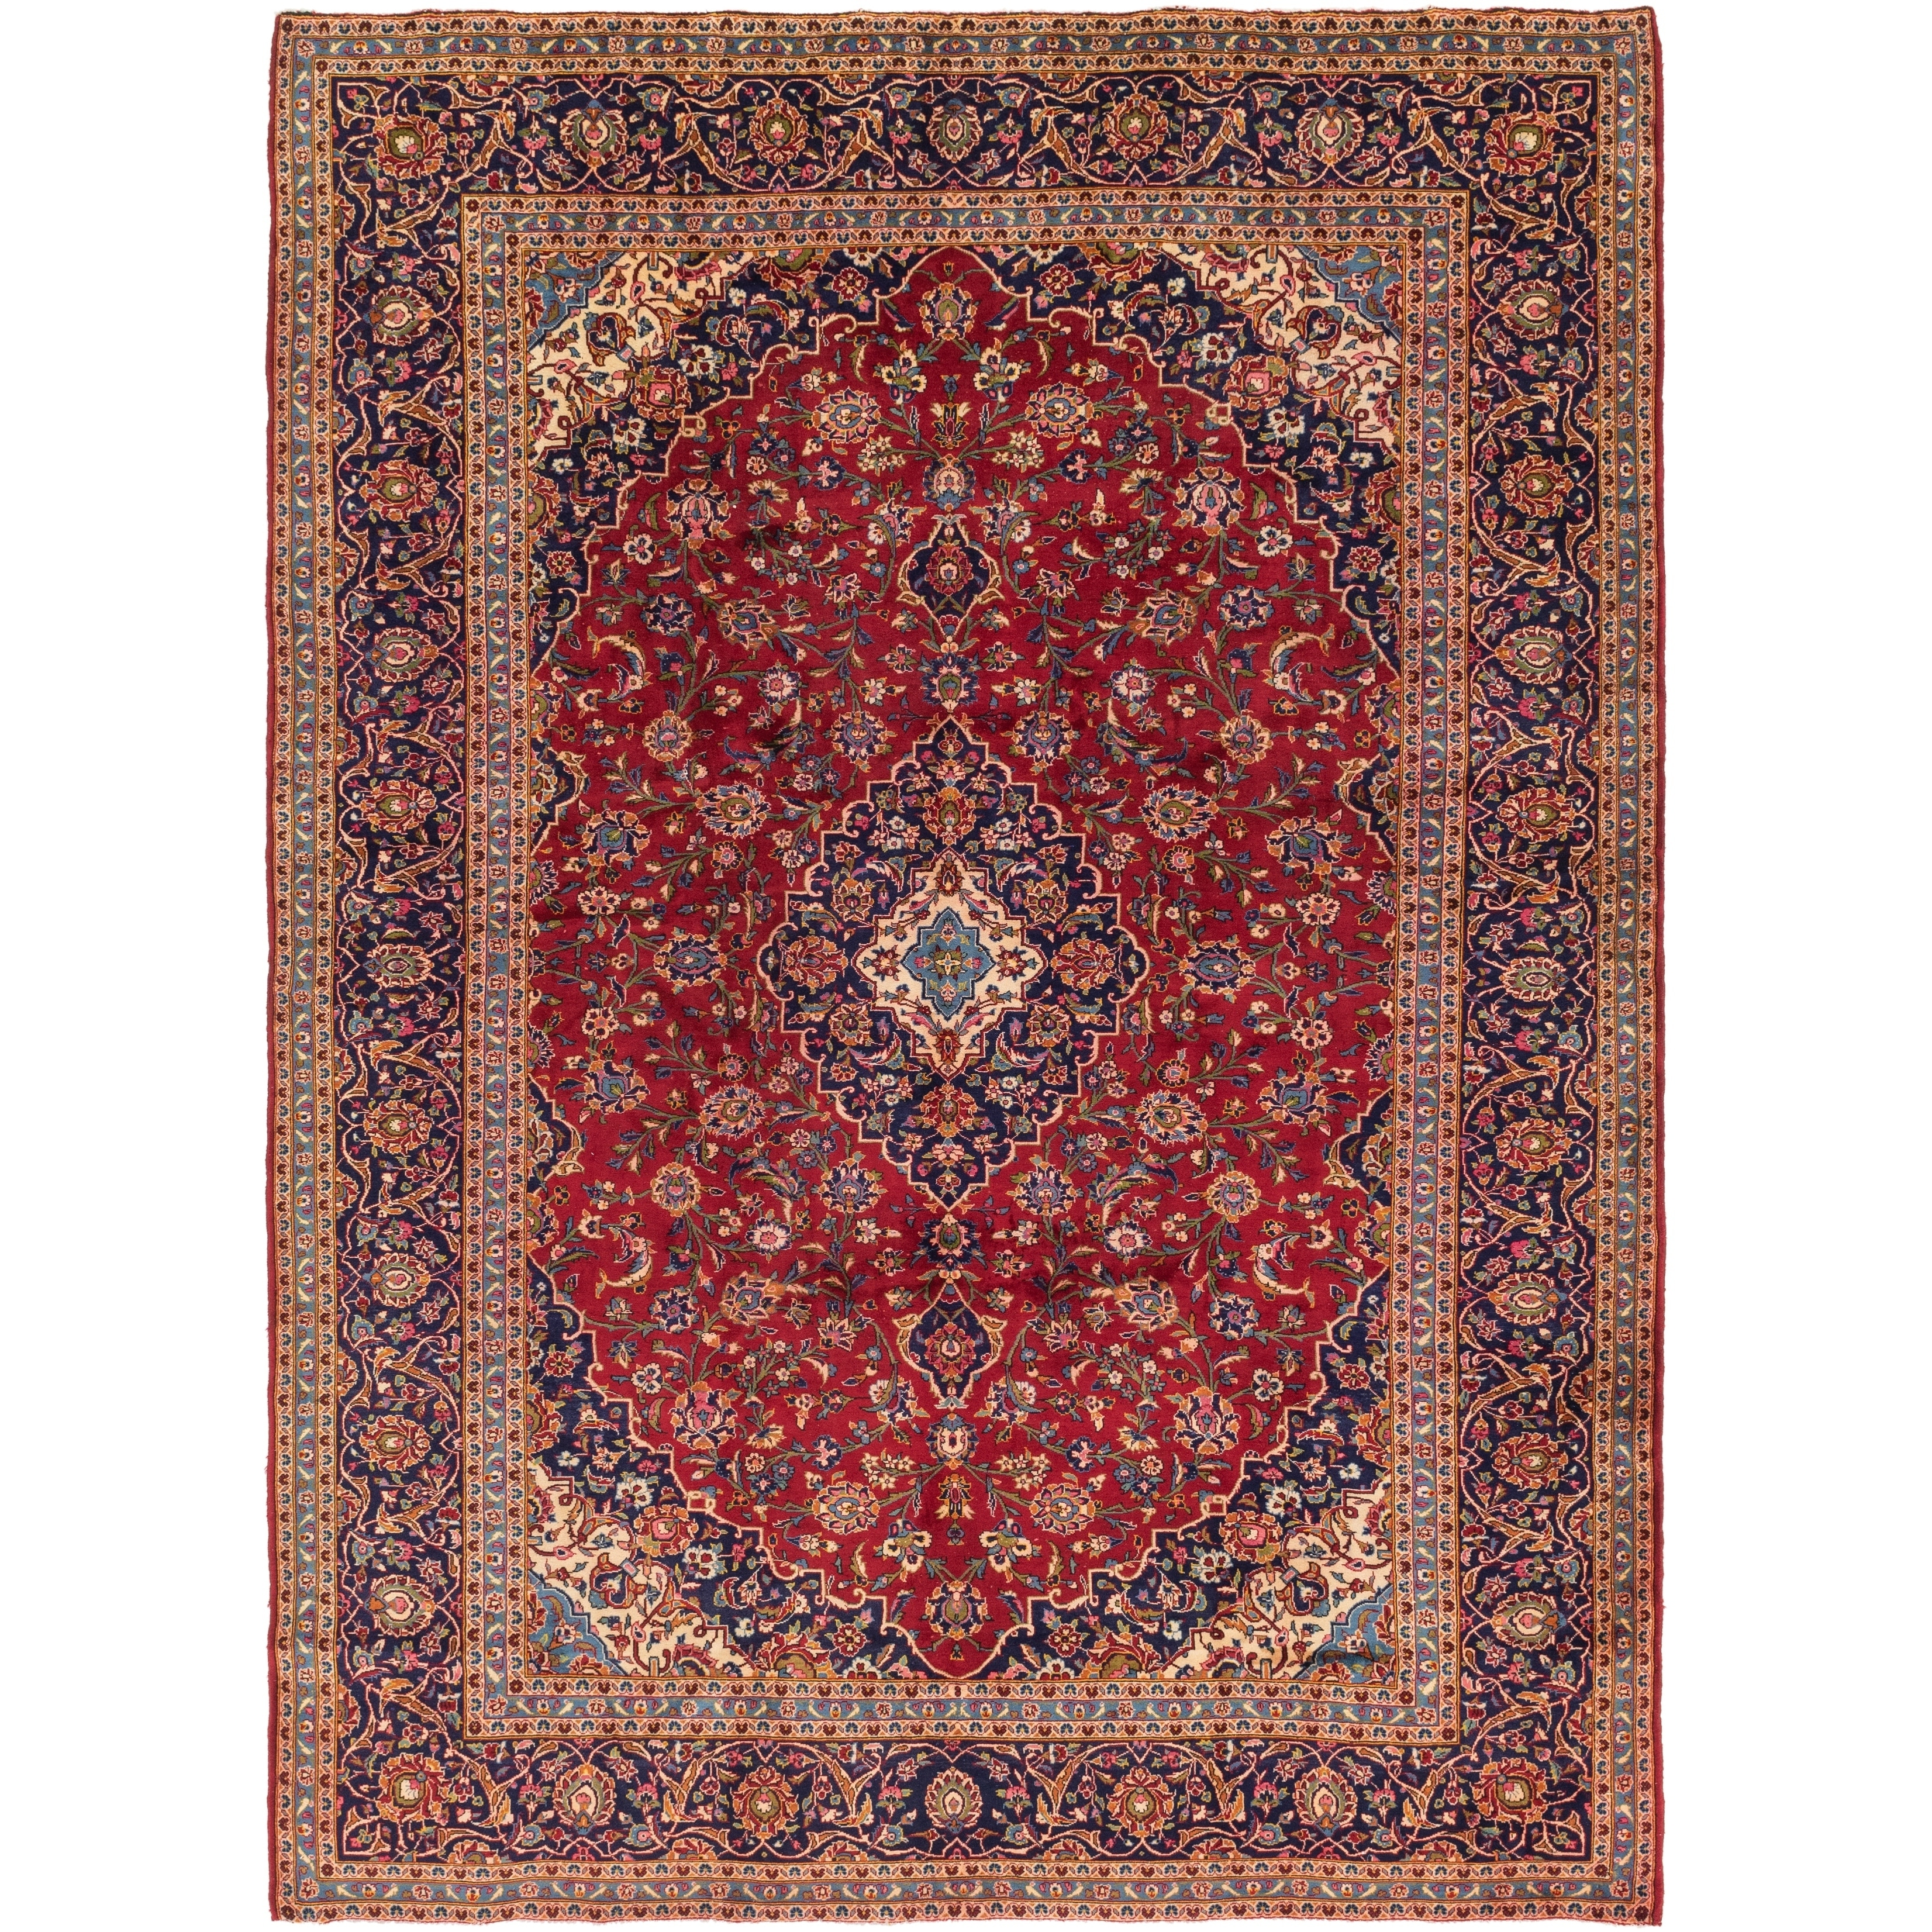 Hand Knotted Kashan Wool Area Rug - 9 7 x 13 2 (Red - 9 7 x 13 2)